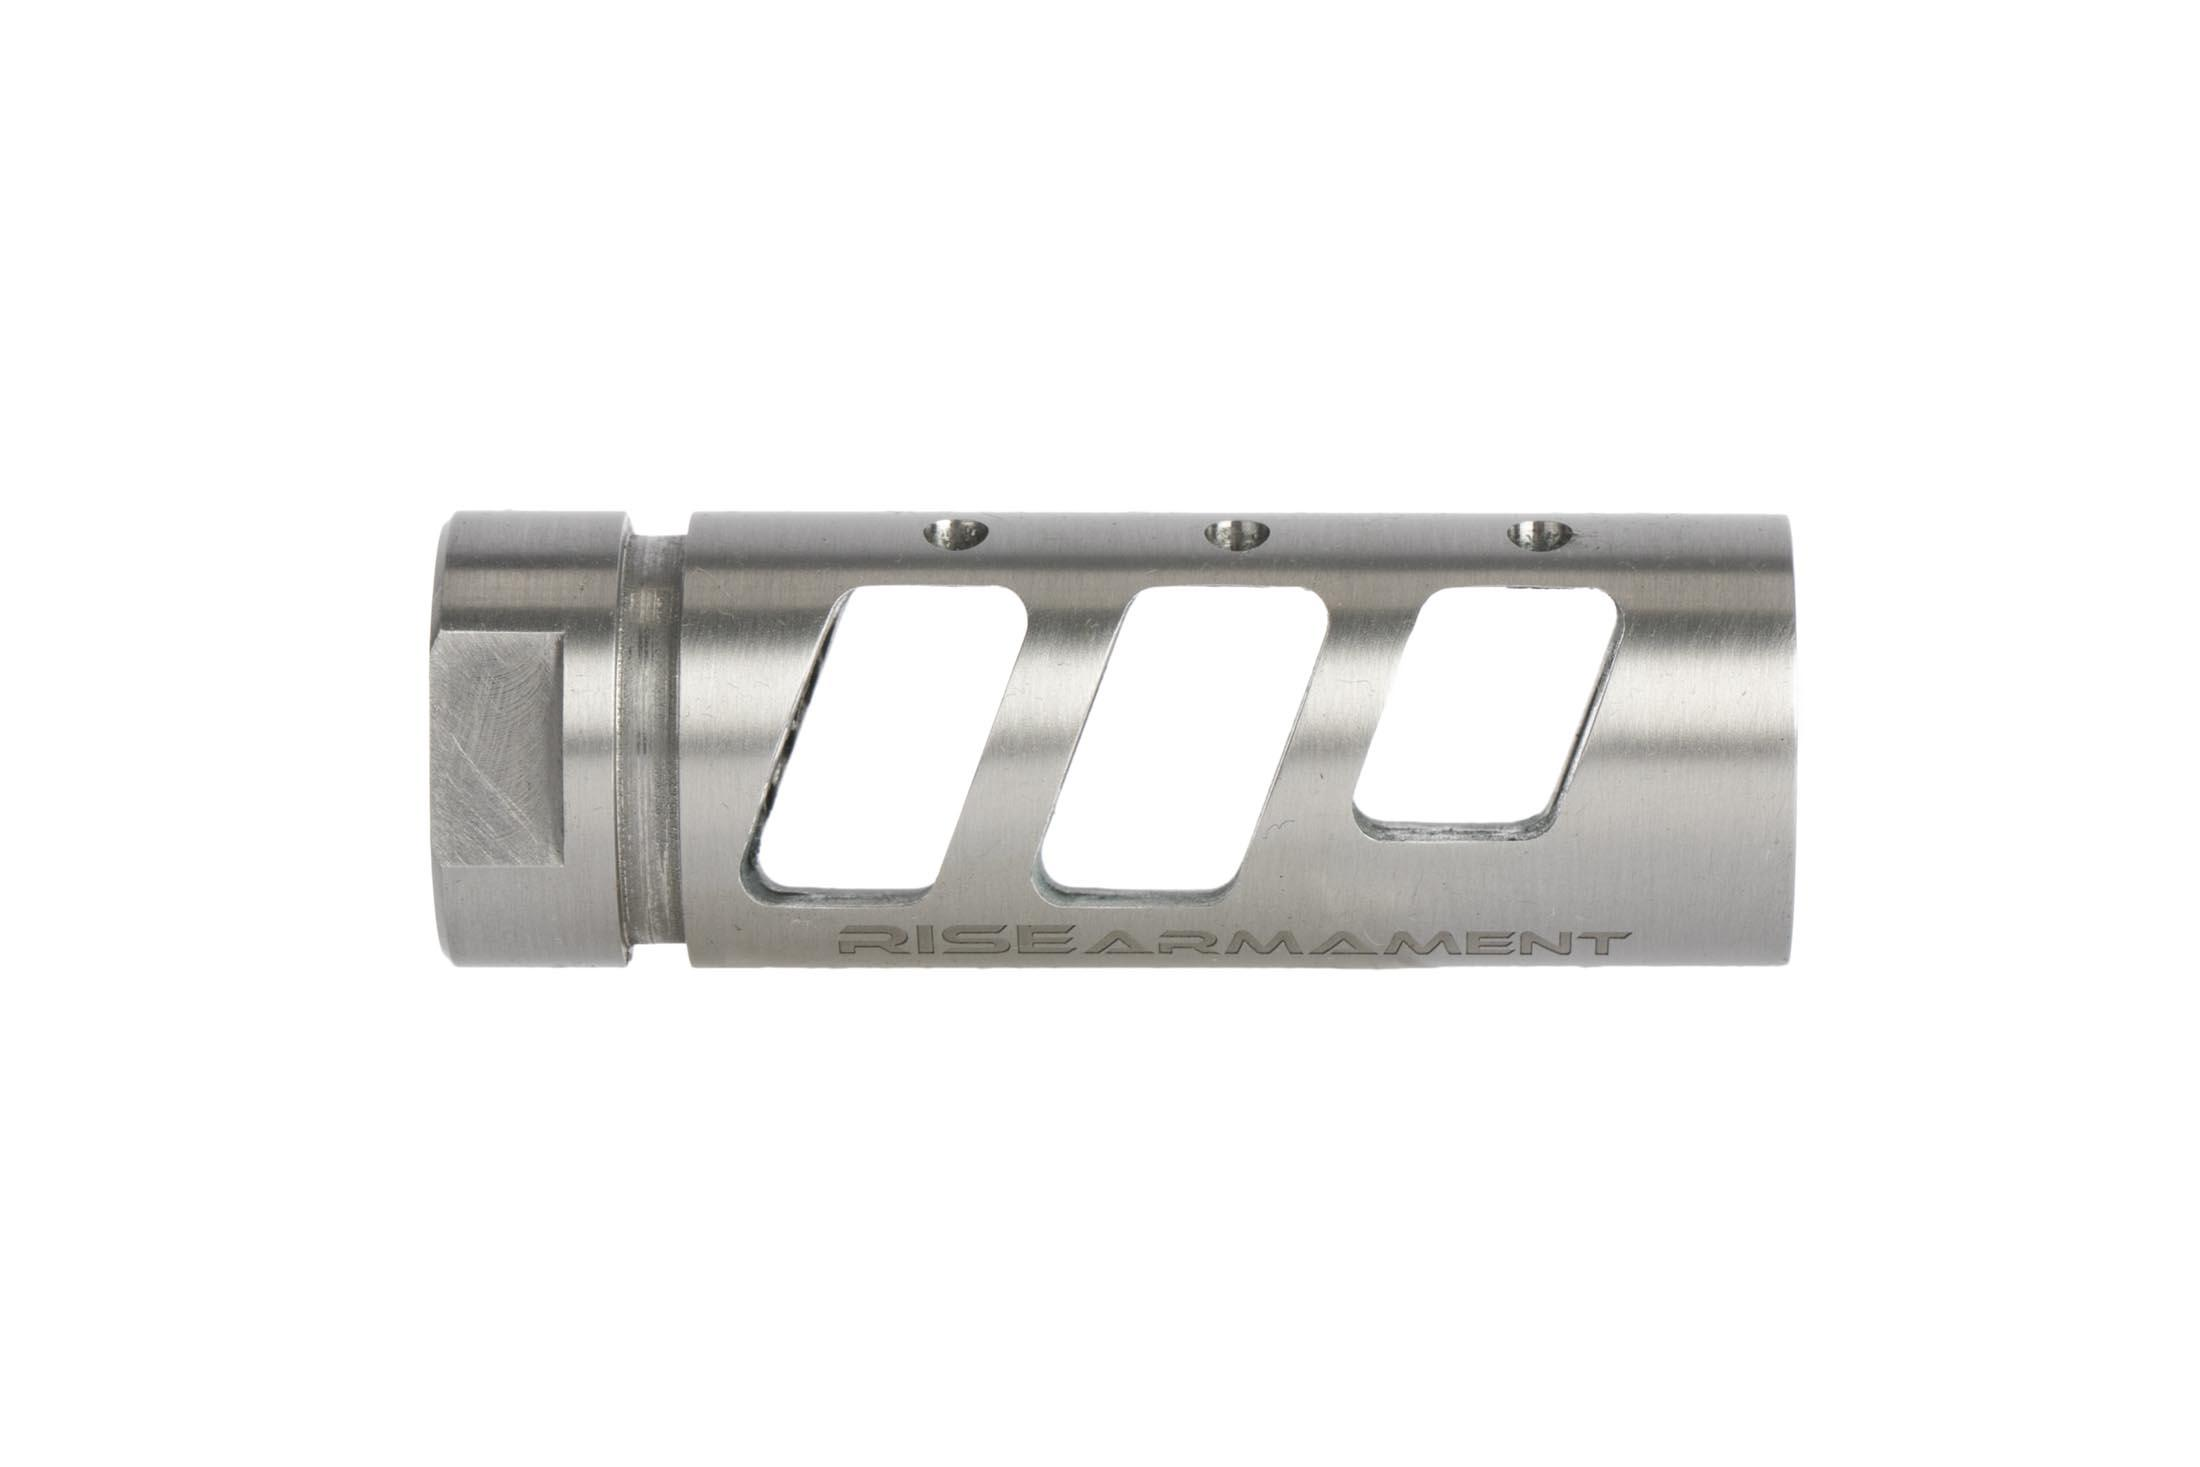 Rise Armament AR 15 compensator with shiny stainless finish is an effective three-chamber compensator